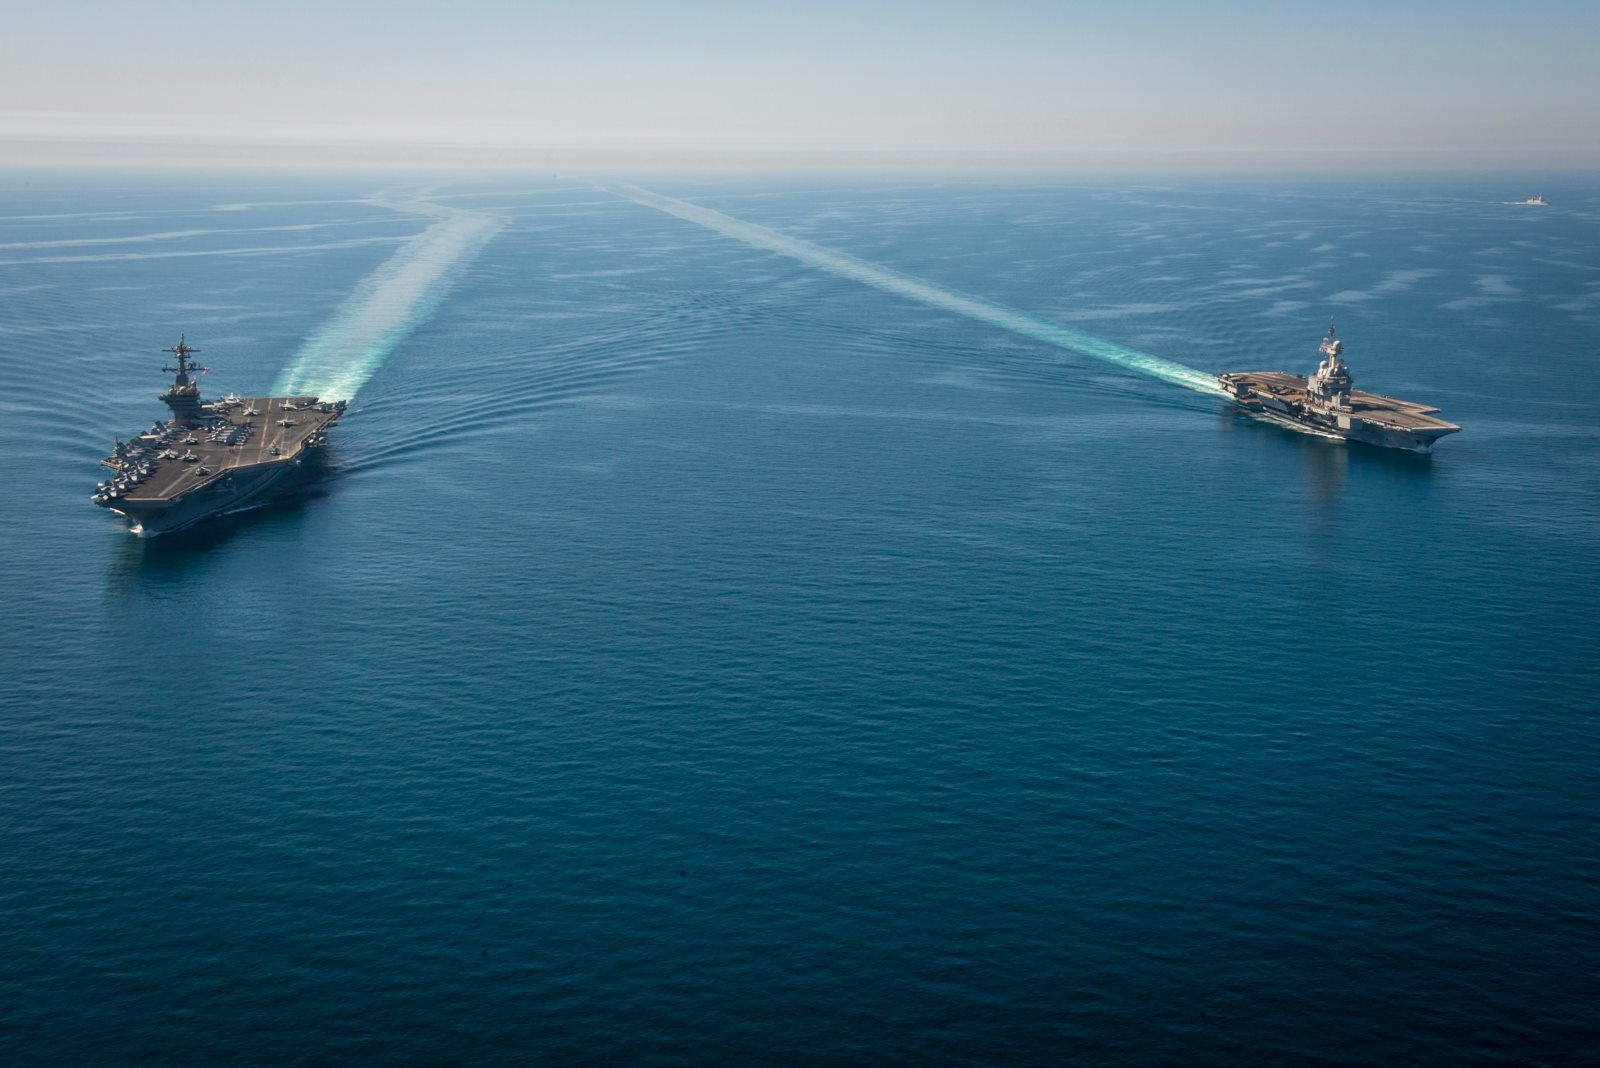 USS Carl Vinson & FS Charles de Gaulle in the Northern Arabian Gulf photo US Navy